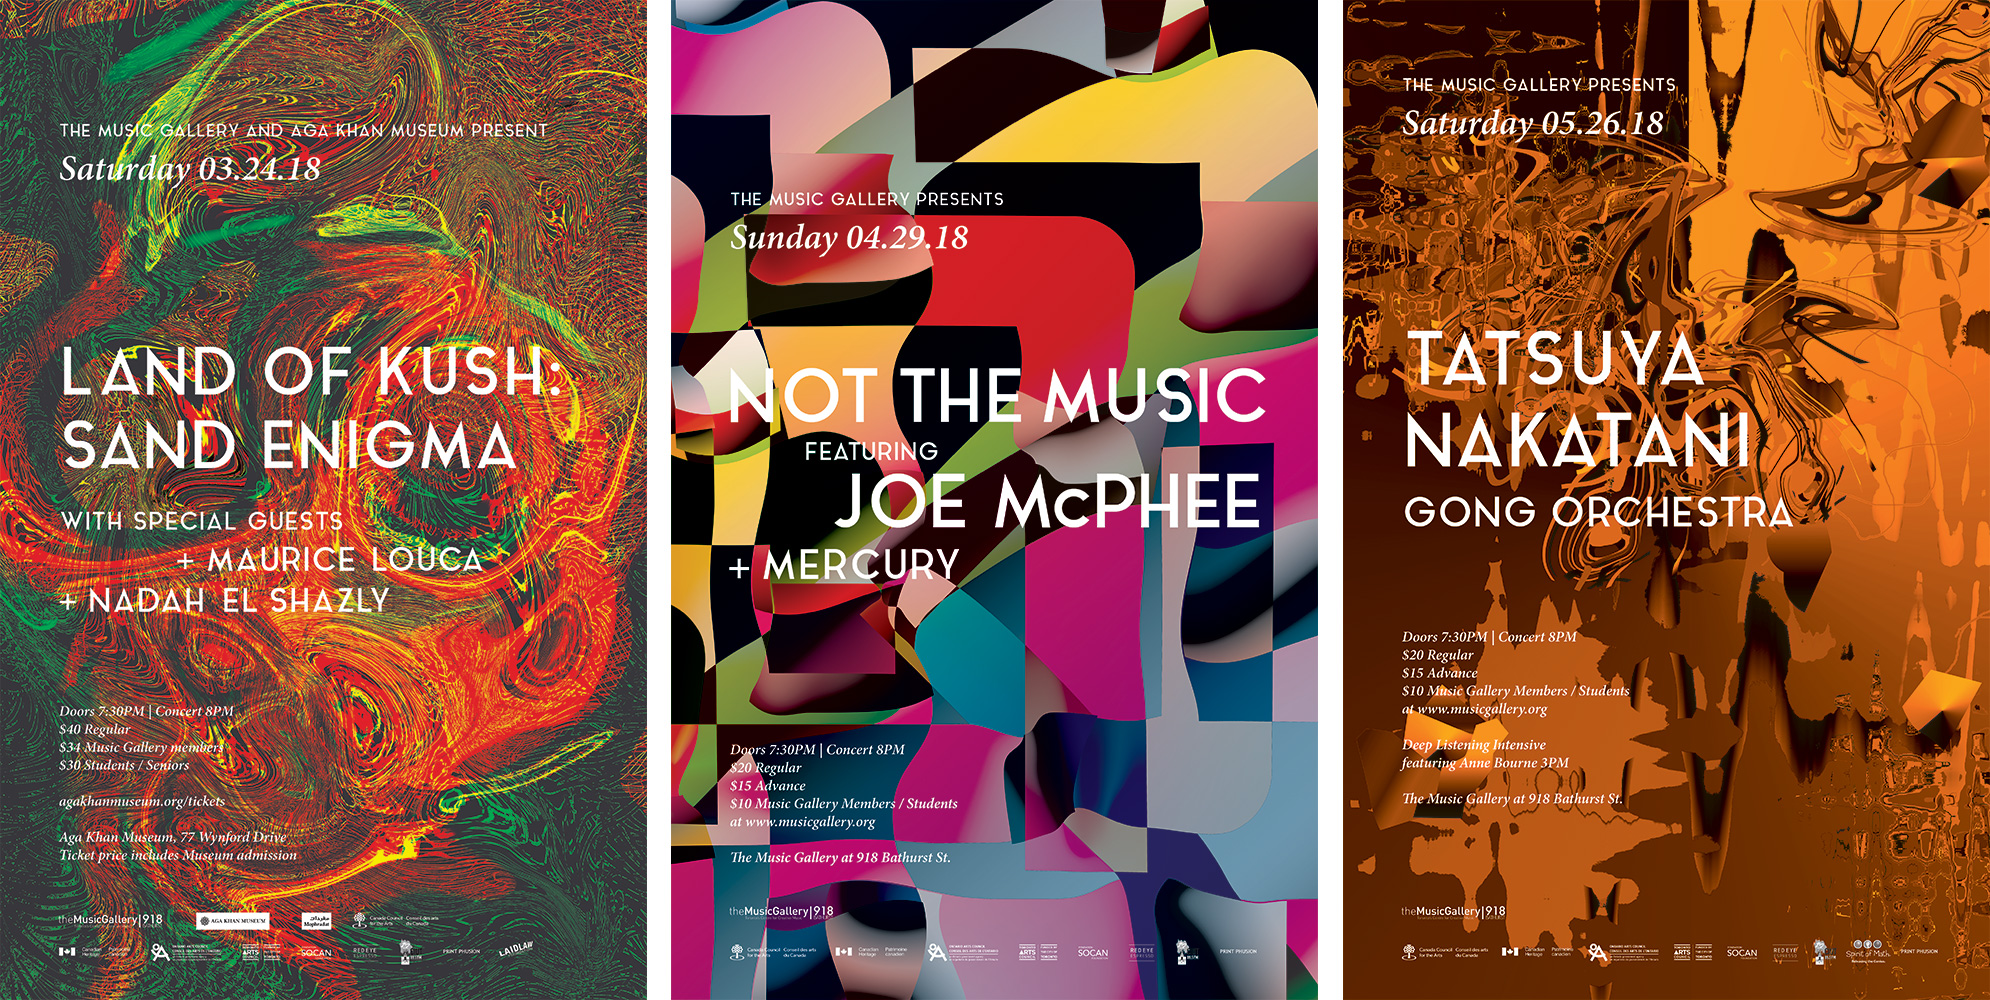 Image of three posters produced for The Music Gallery's 2017-2018 season. The first poster (left) is a series of swirls with a sand-like texture. The second poster (center) consists of a series of waving figures overlaid on top of each other, giving the appearance of an asymmetric checkerboard of eclectic colors. The third poster (right) is an abstract composition of bronze-looking formations.